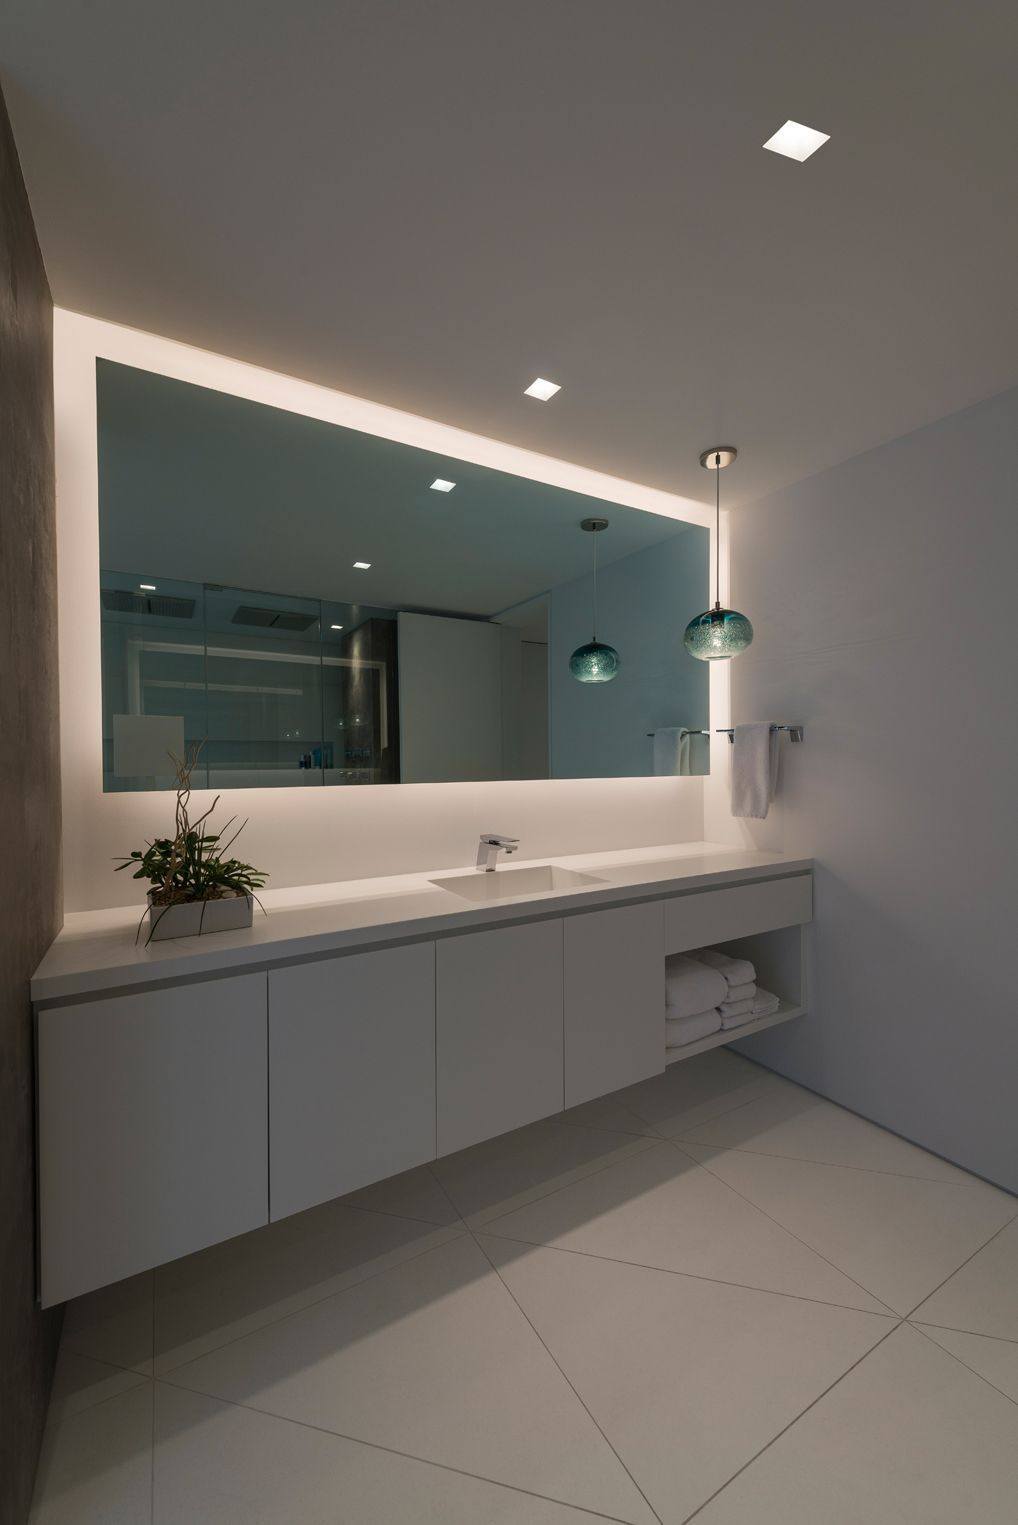 8 Bathroom Mirror Ideas You Might Not Have Thought Of Modernes